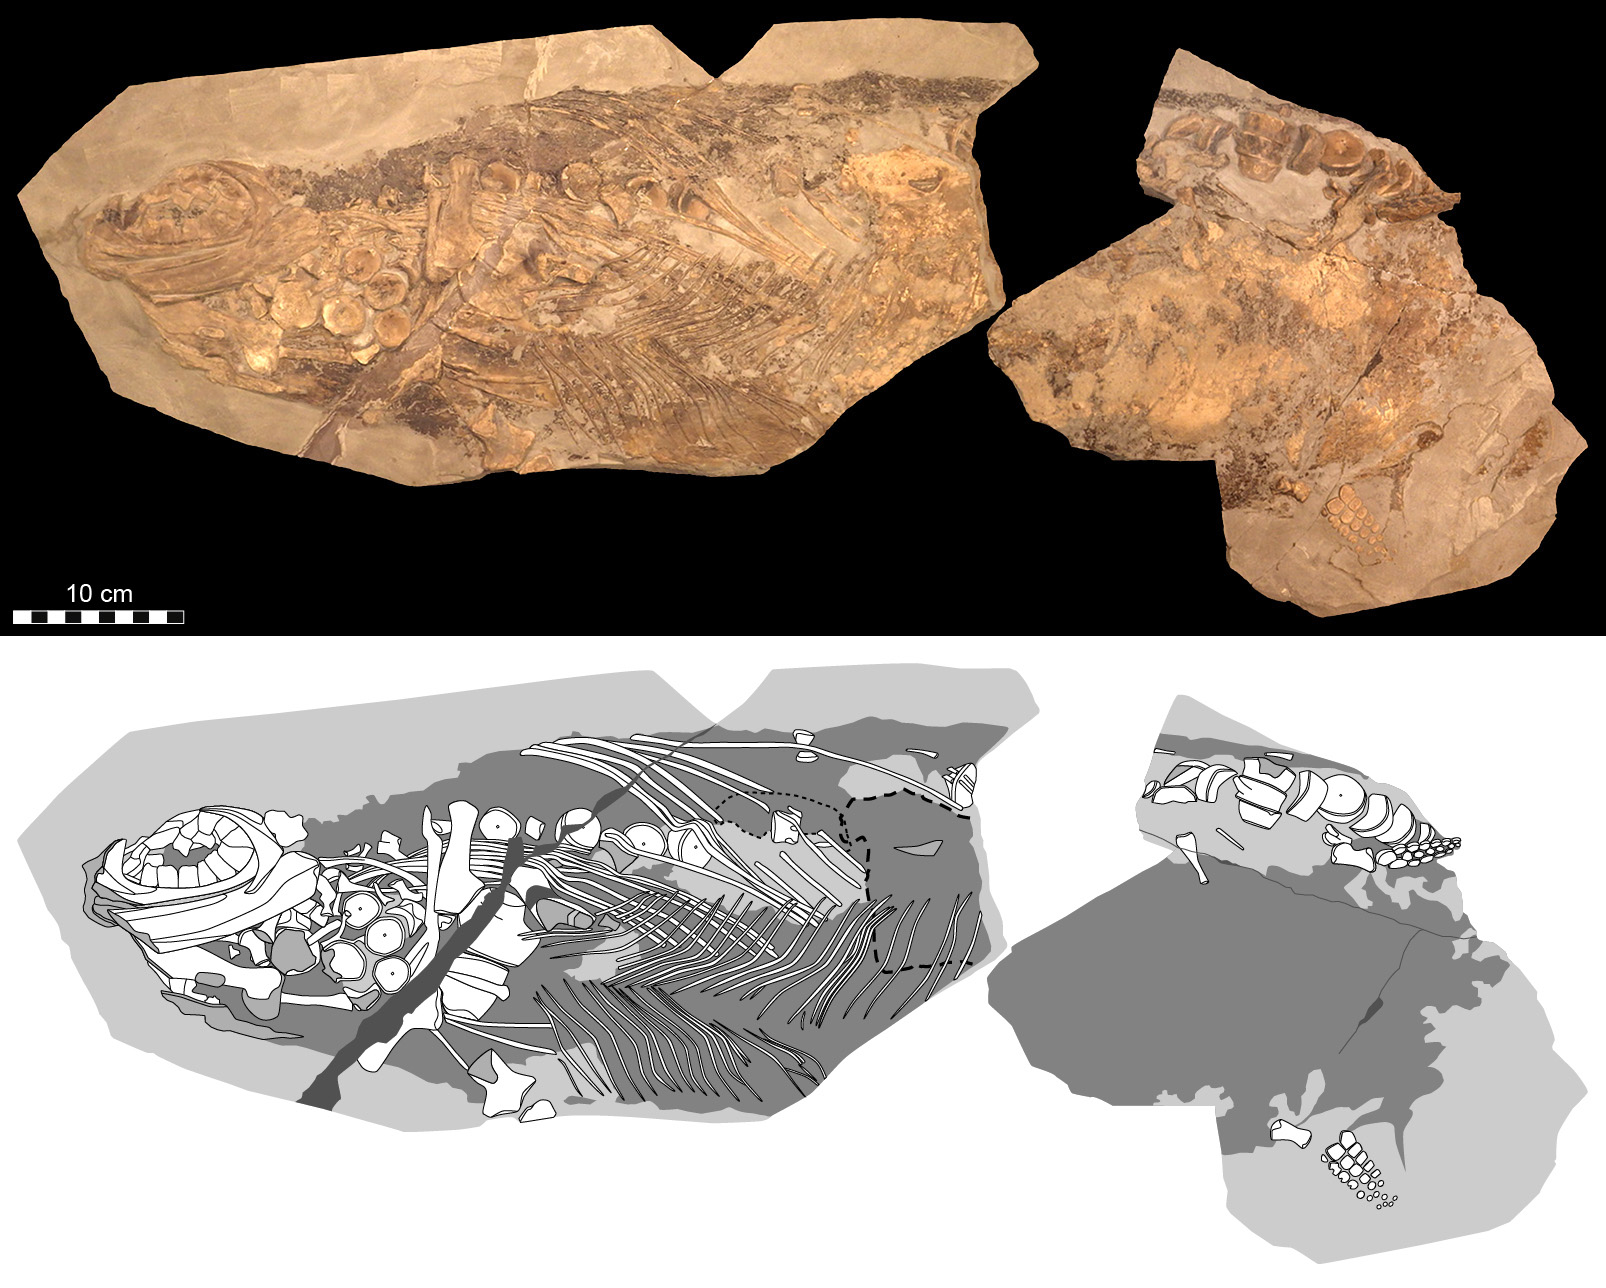 Like Whales and Dolphins, Prehistoric 'Fish Lizards' Kept Warm With Blubber - Smithsonian - whales, smithsonian, prehistoric, lizards, dolphins, blubber